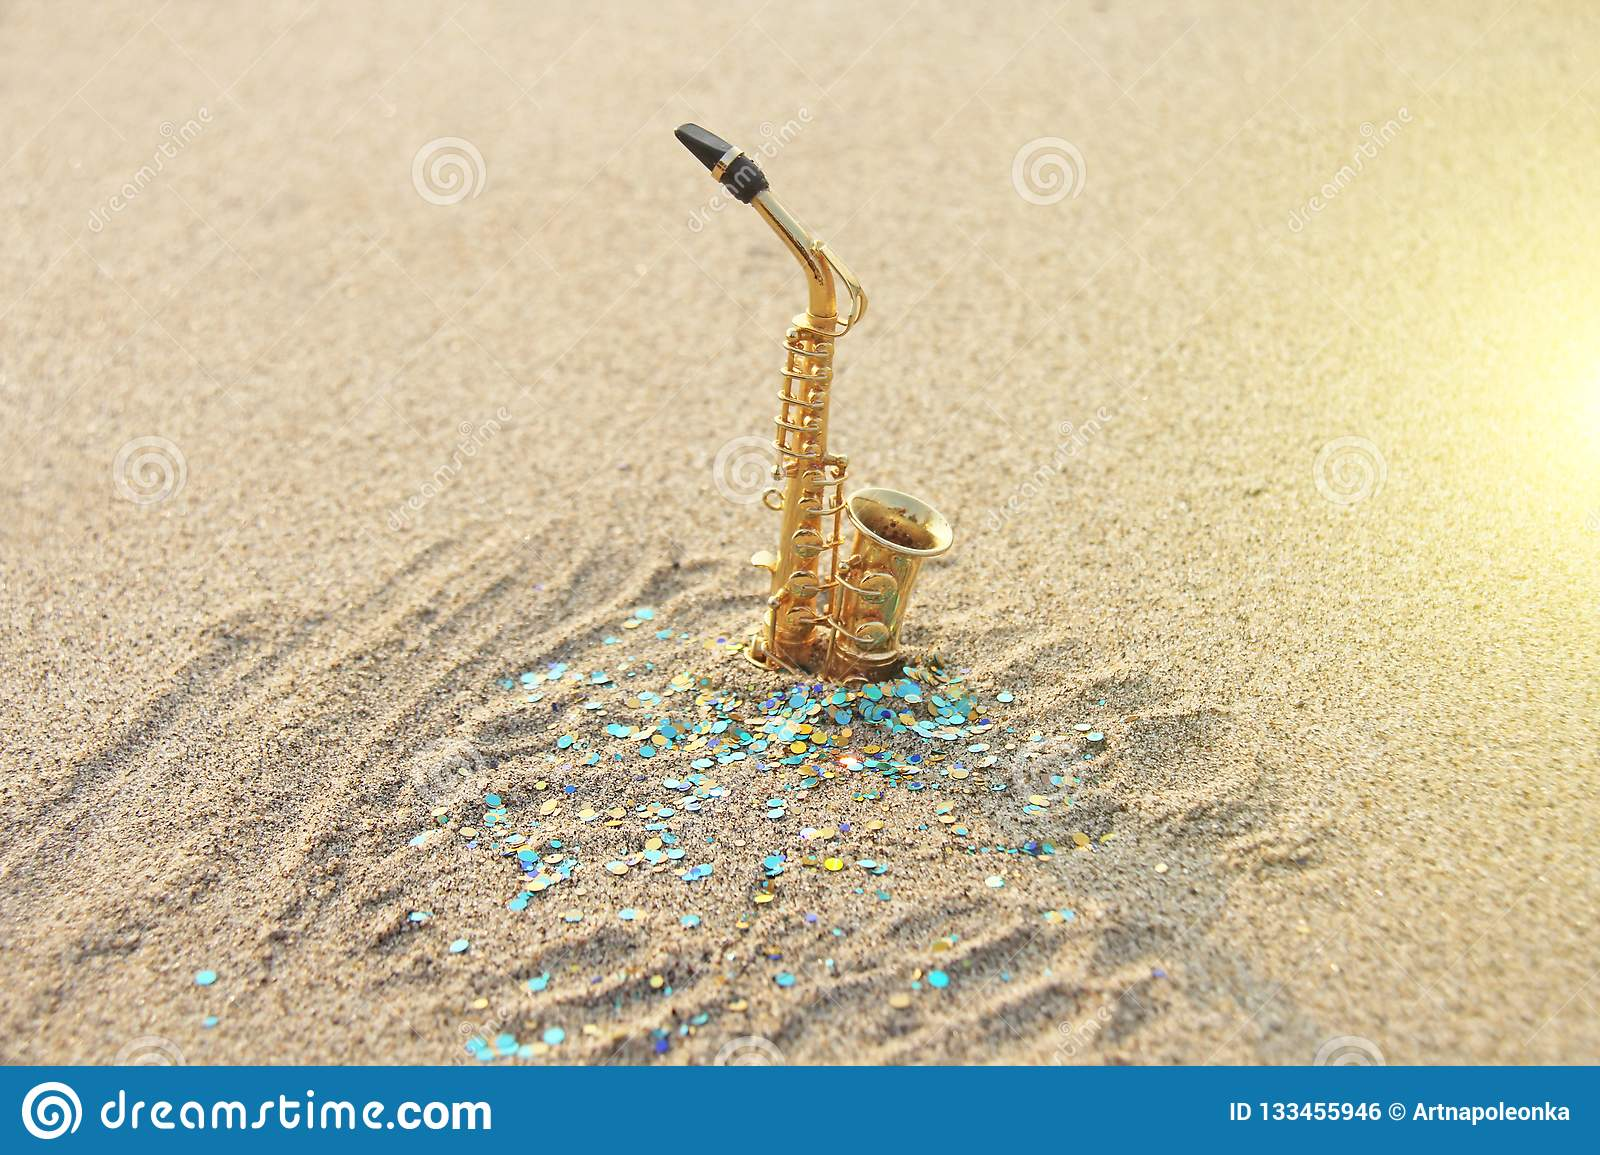 The golden alto saxophone stands on the sand against the background of blue shimmers. Romantic musical background. Musical